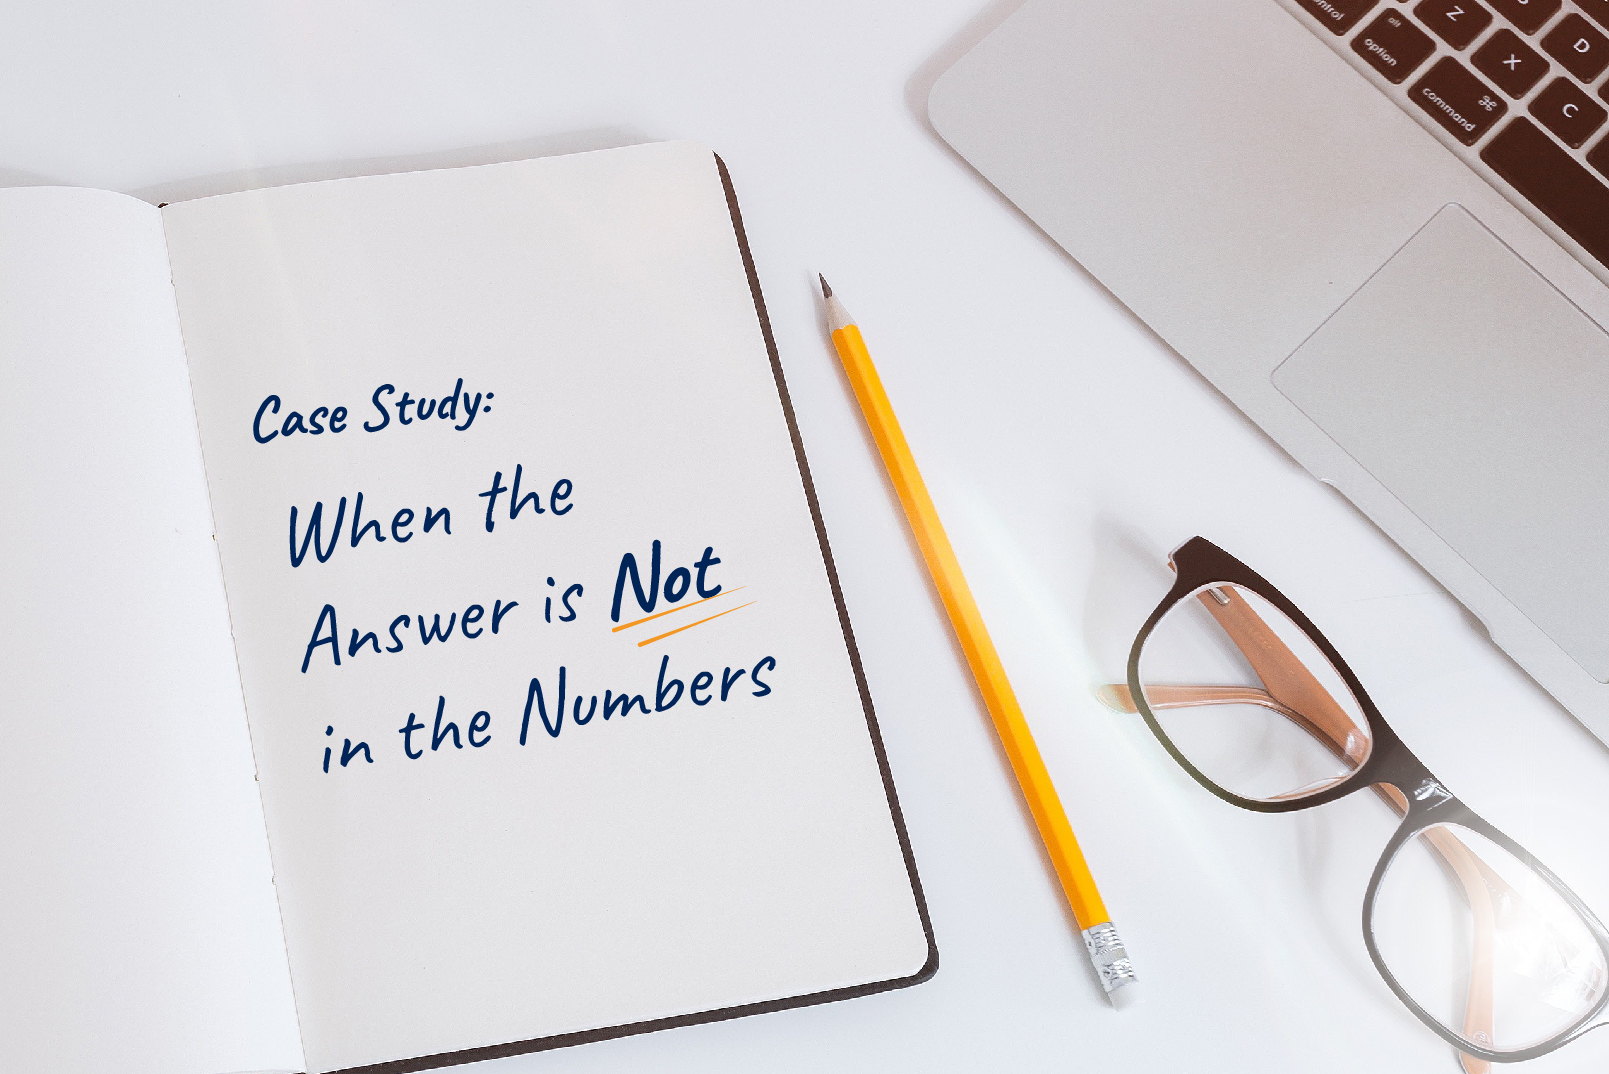 Case Study: When the answer is Not in the Numbers